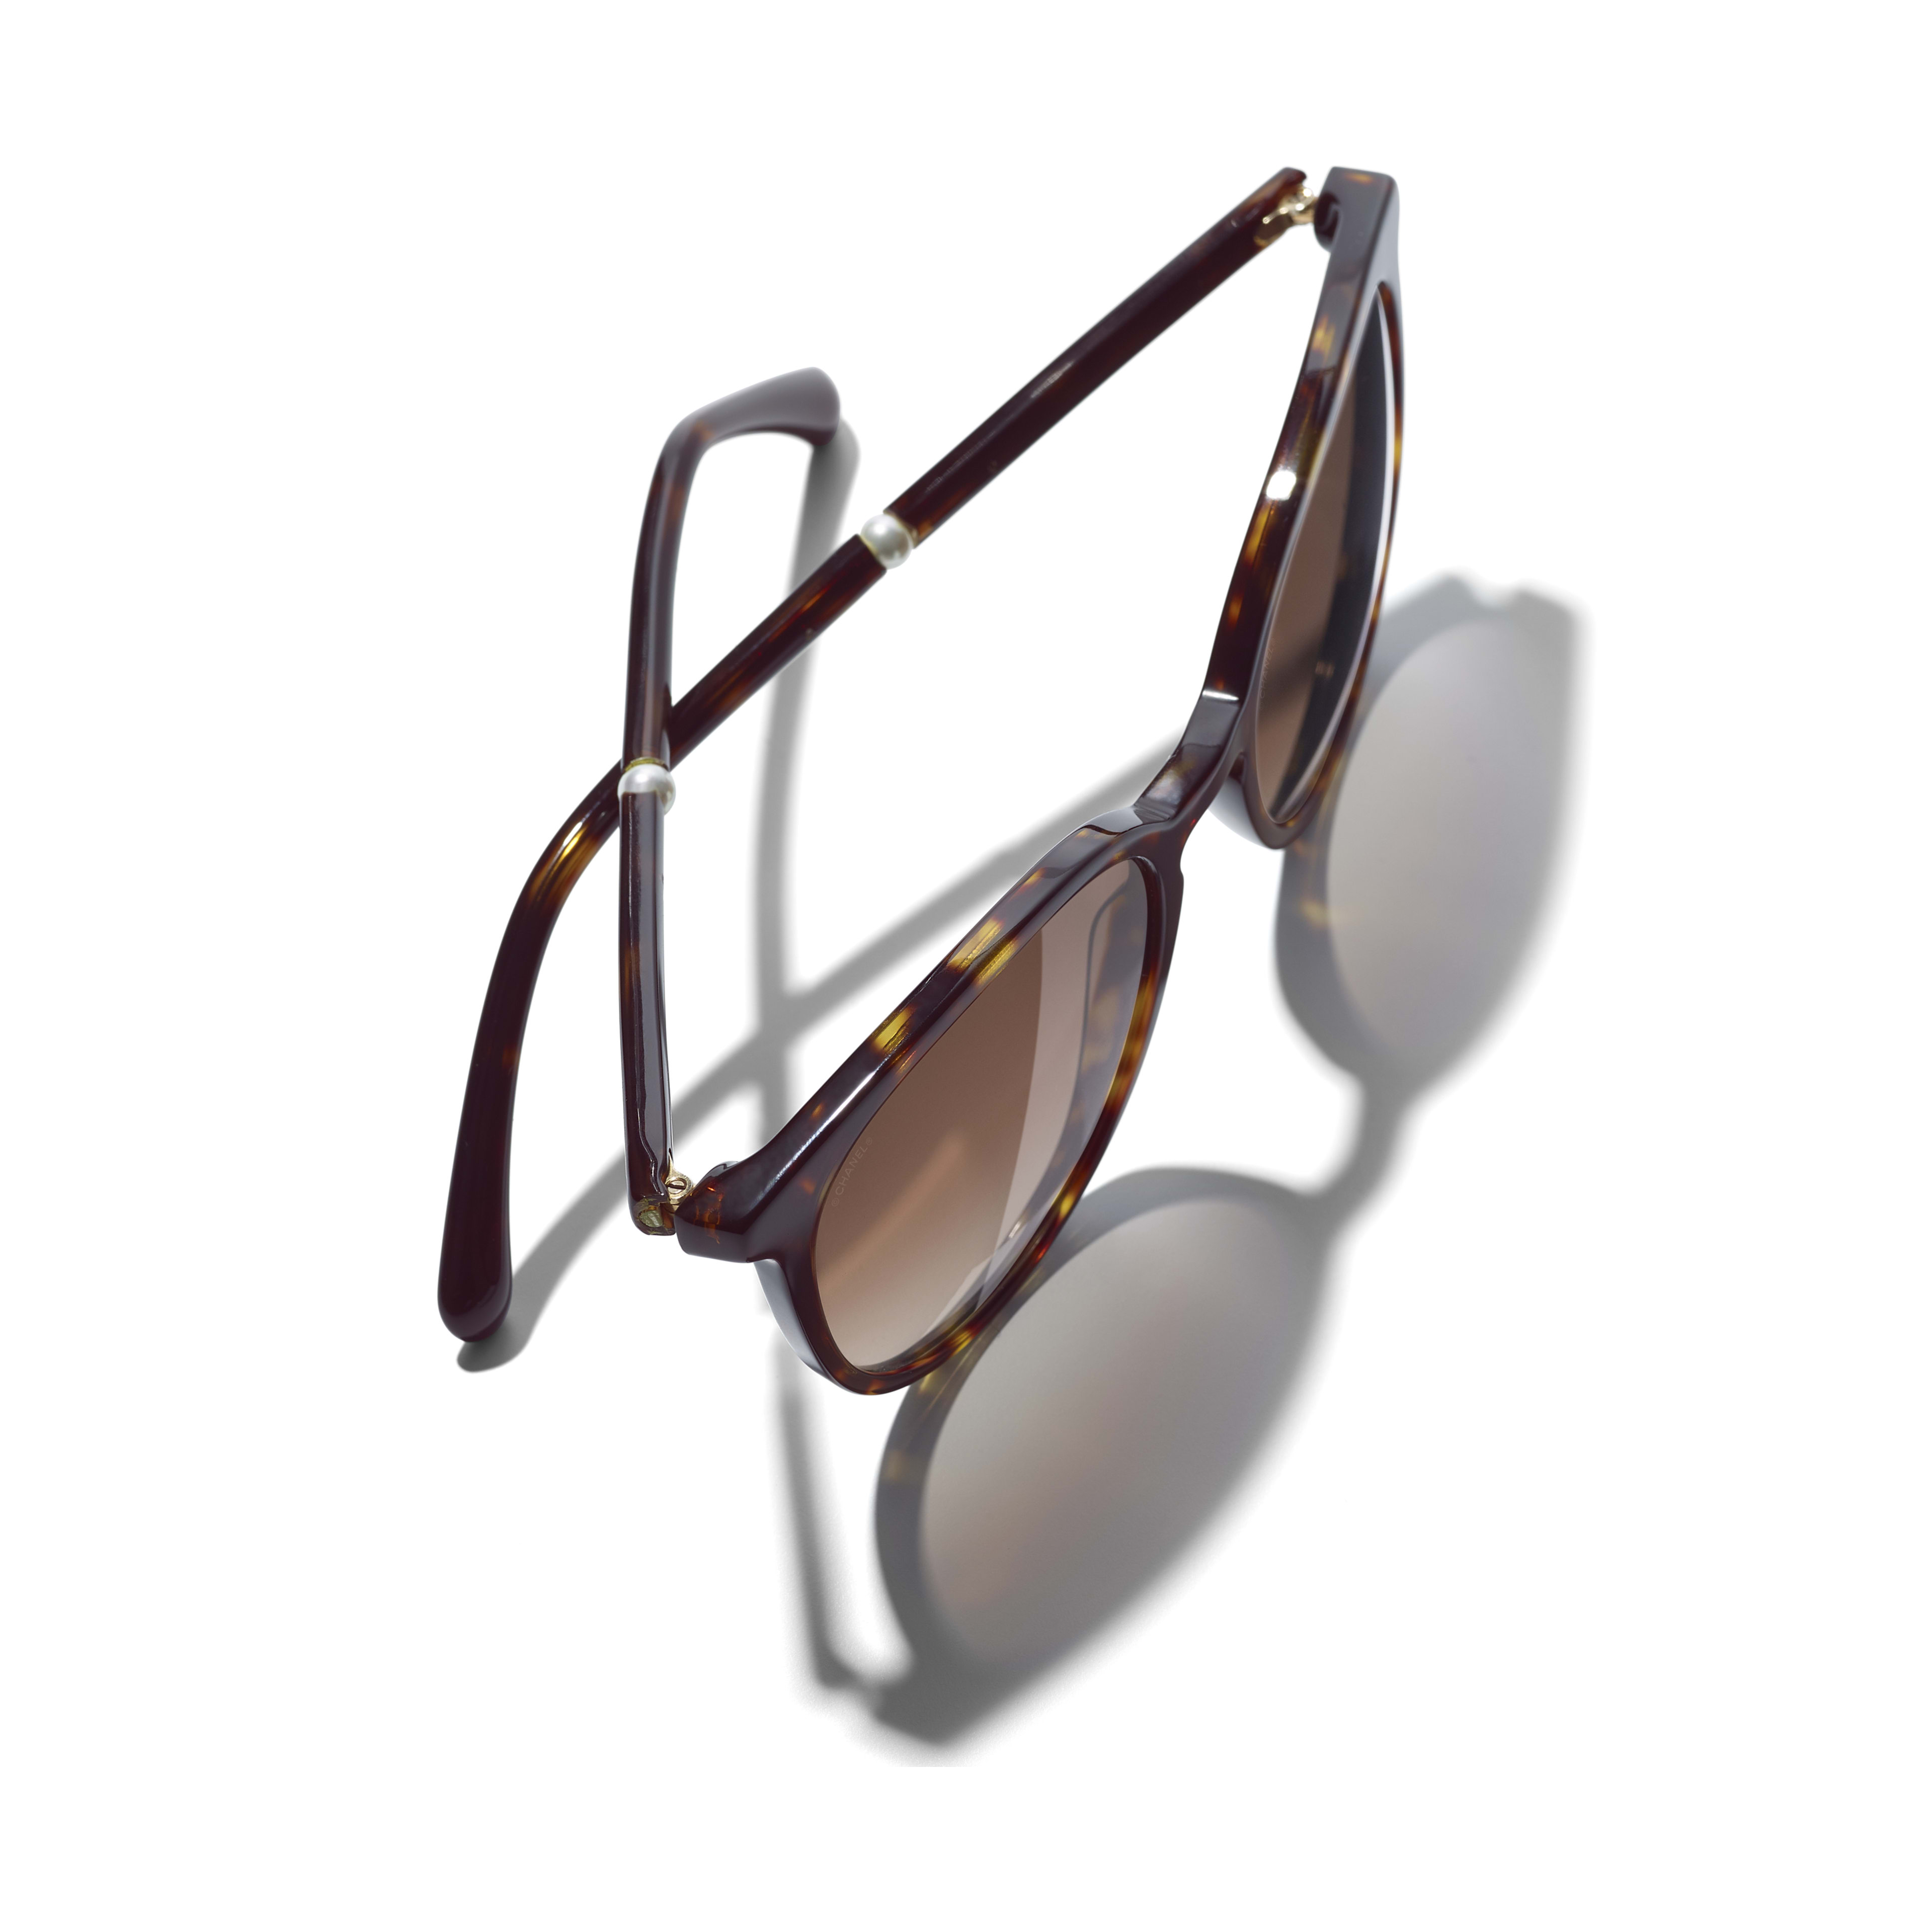 Butterfly Sunglasses - Dark Tortoise - Acetate & Imitation Pearls - Polarized Lenses - Extra view - see full sized version